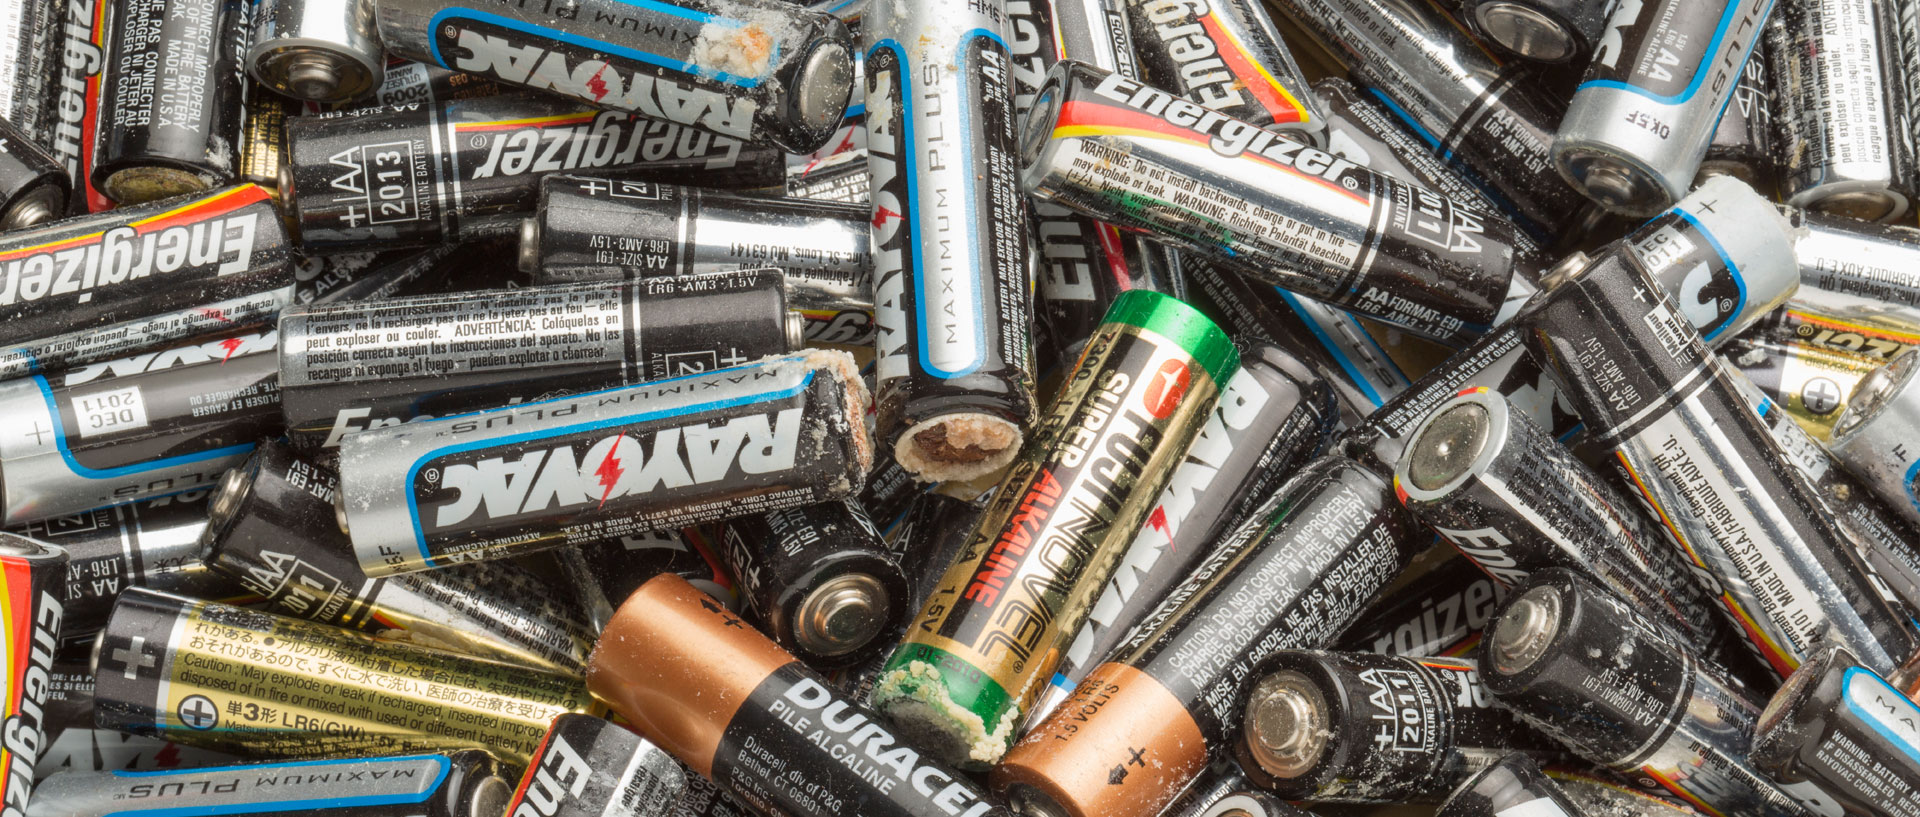 Why Do Batteries Leak? Consumer Reports #1586B6